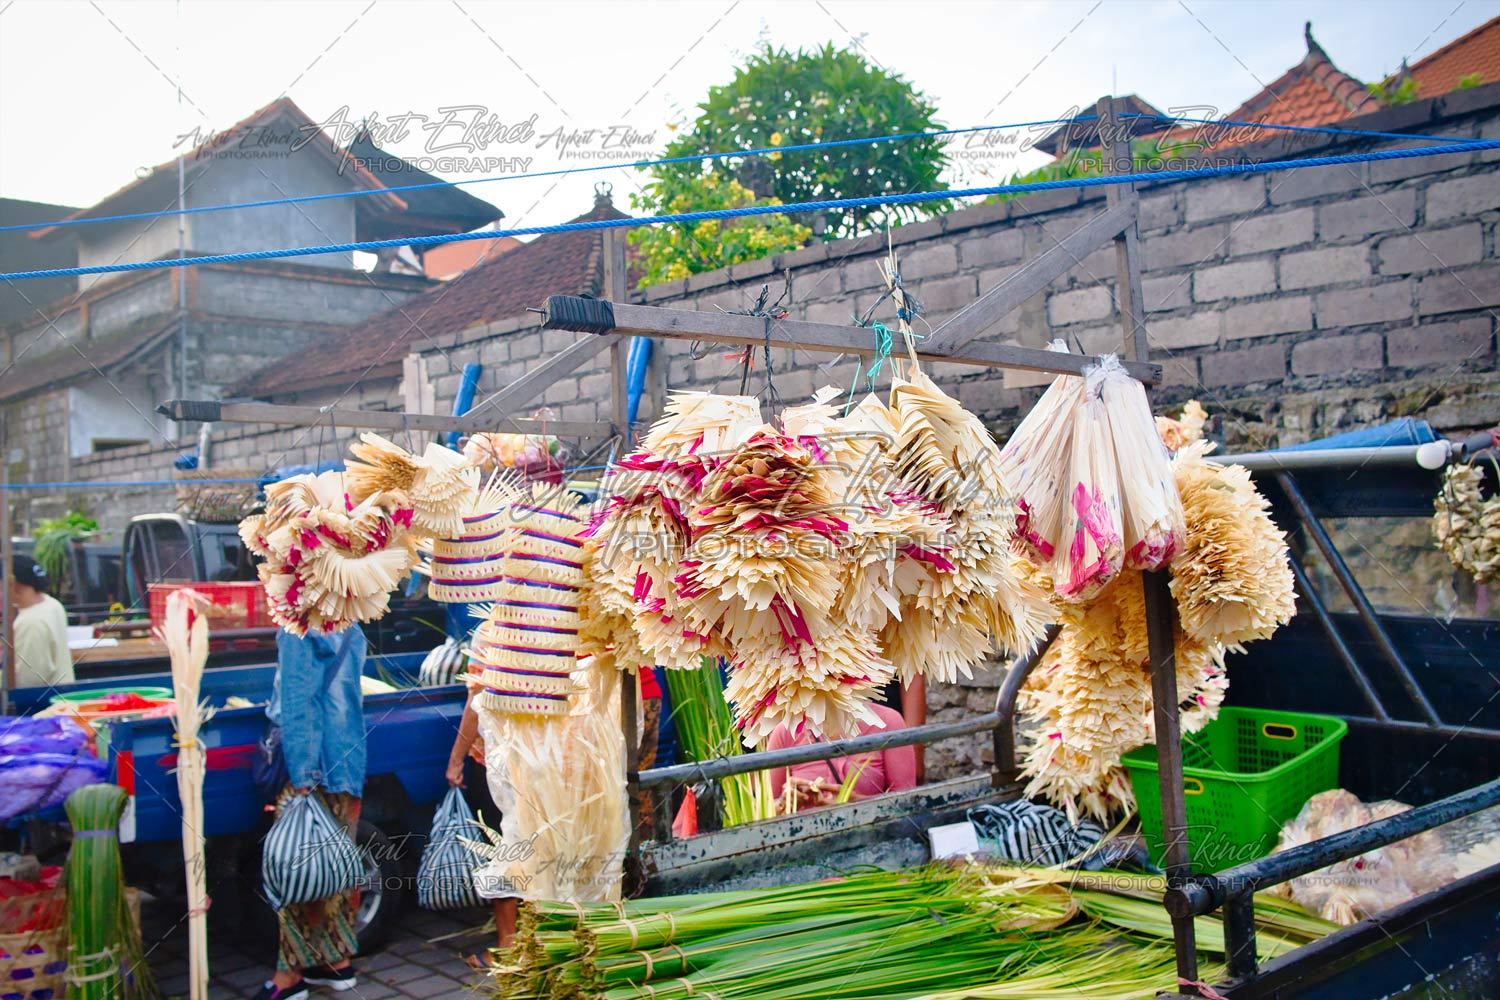 Morning Market in Ubud, Bali Island, Indonesia